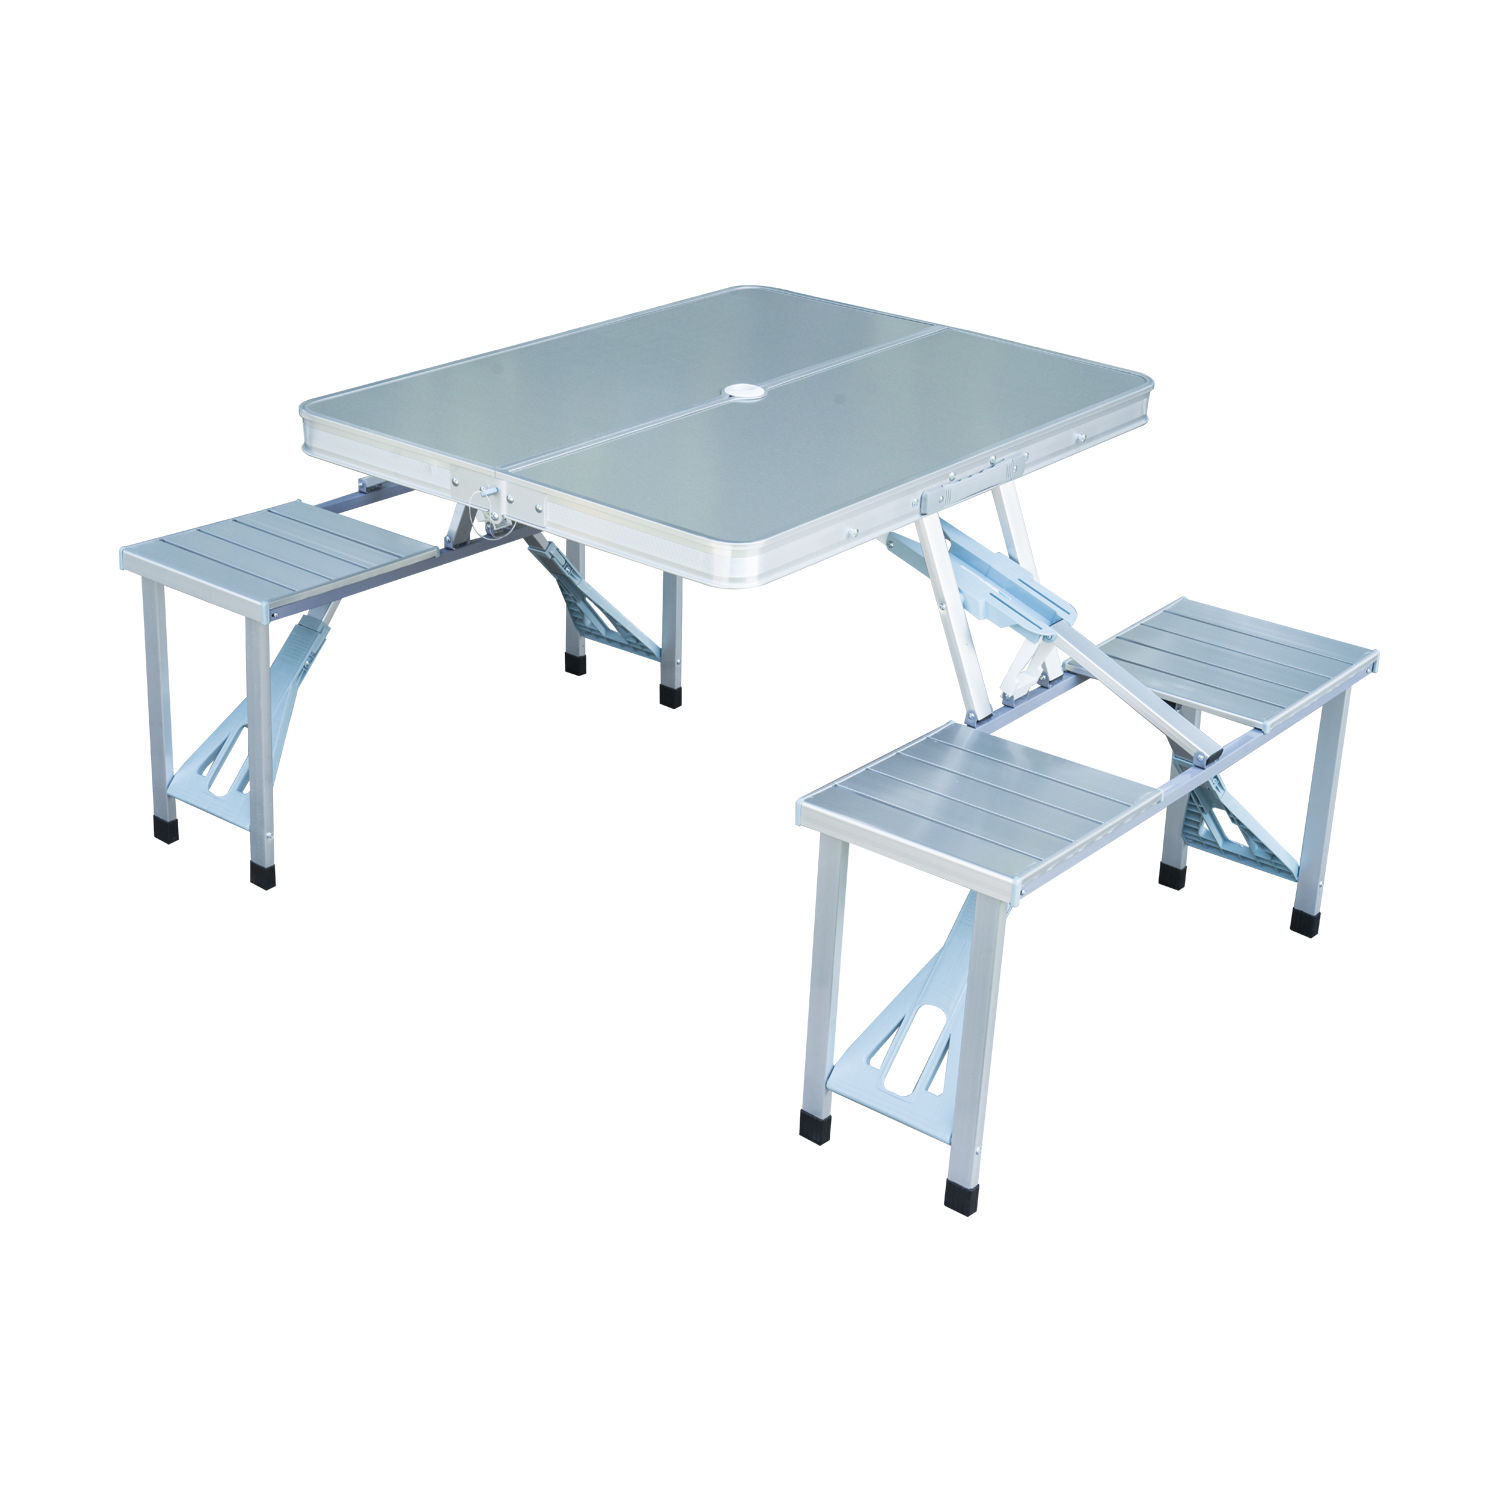 Outsunny Outdoor Aluminum Portable Folding Camp Suitcase Picnic Table With 4 Seats Silver 0